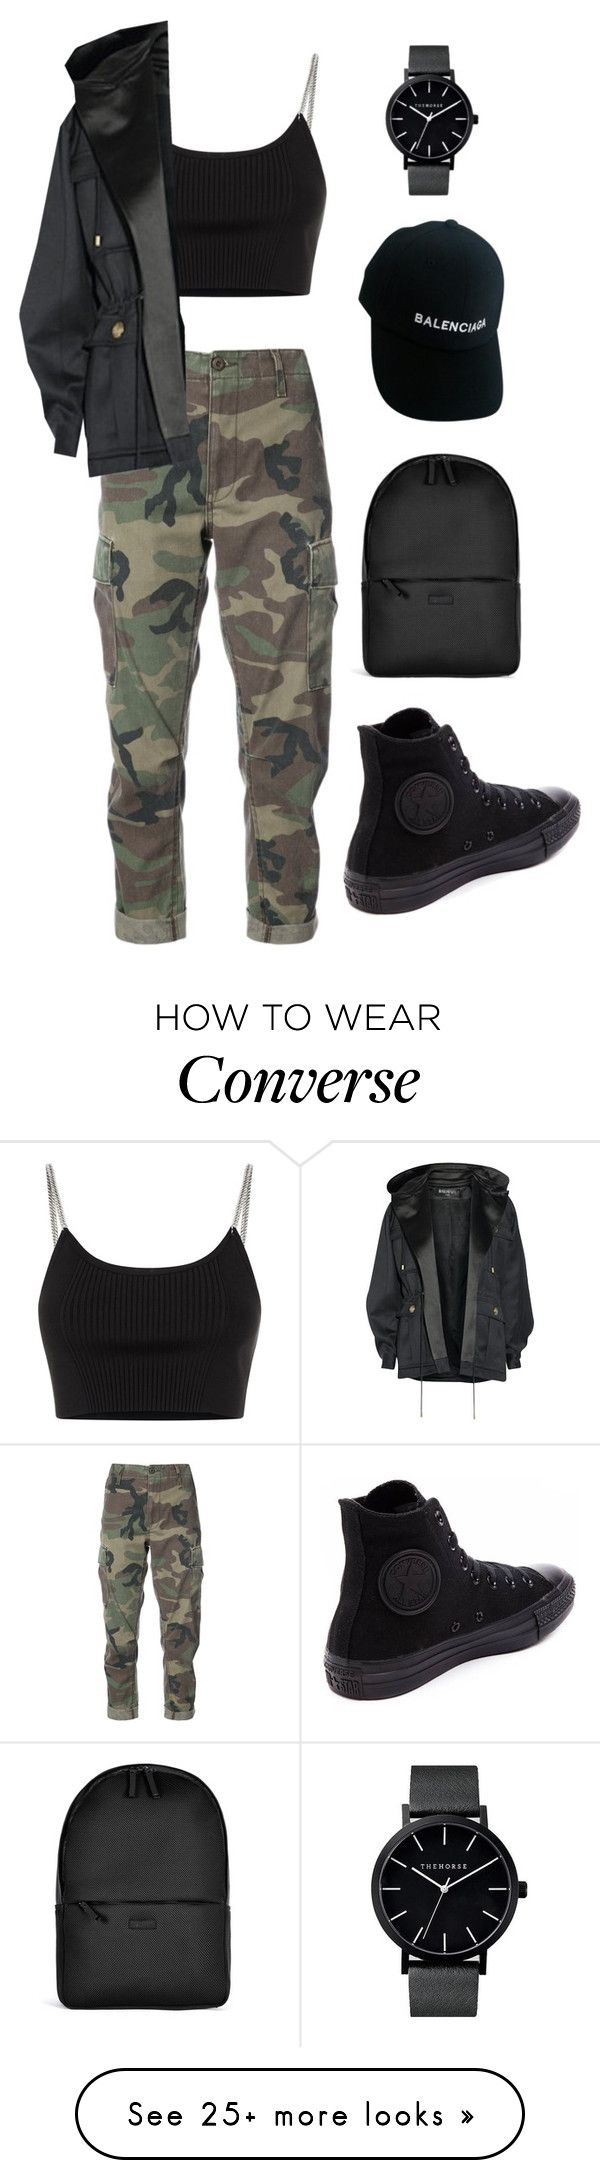 """fashion"" by ee3674889 on Polyvore featuring RE/DONE, Alexander Wang, Balmain, Converse, Rains and Balenciaga"